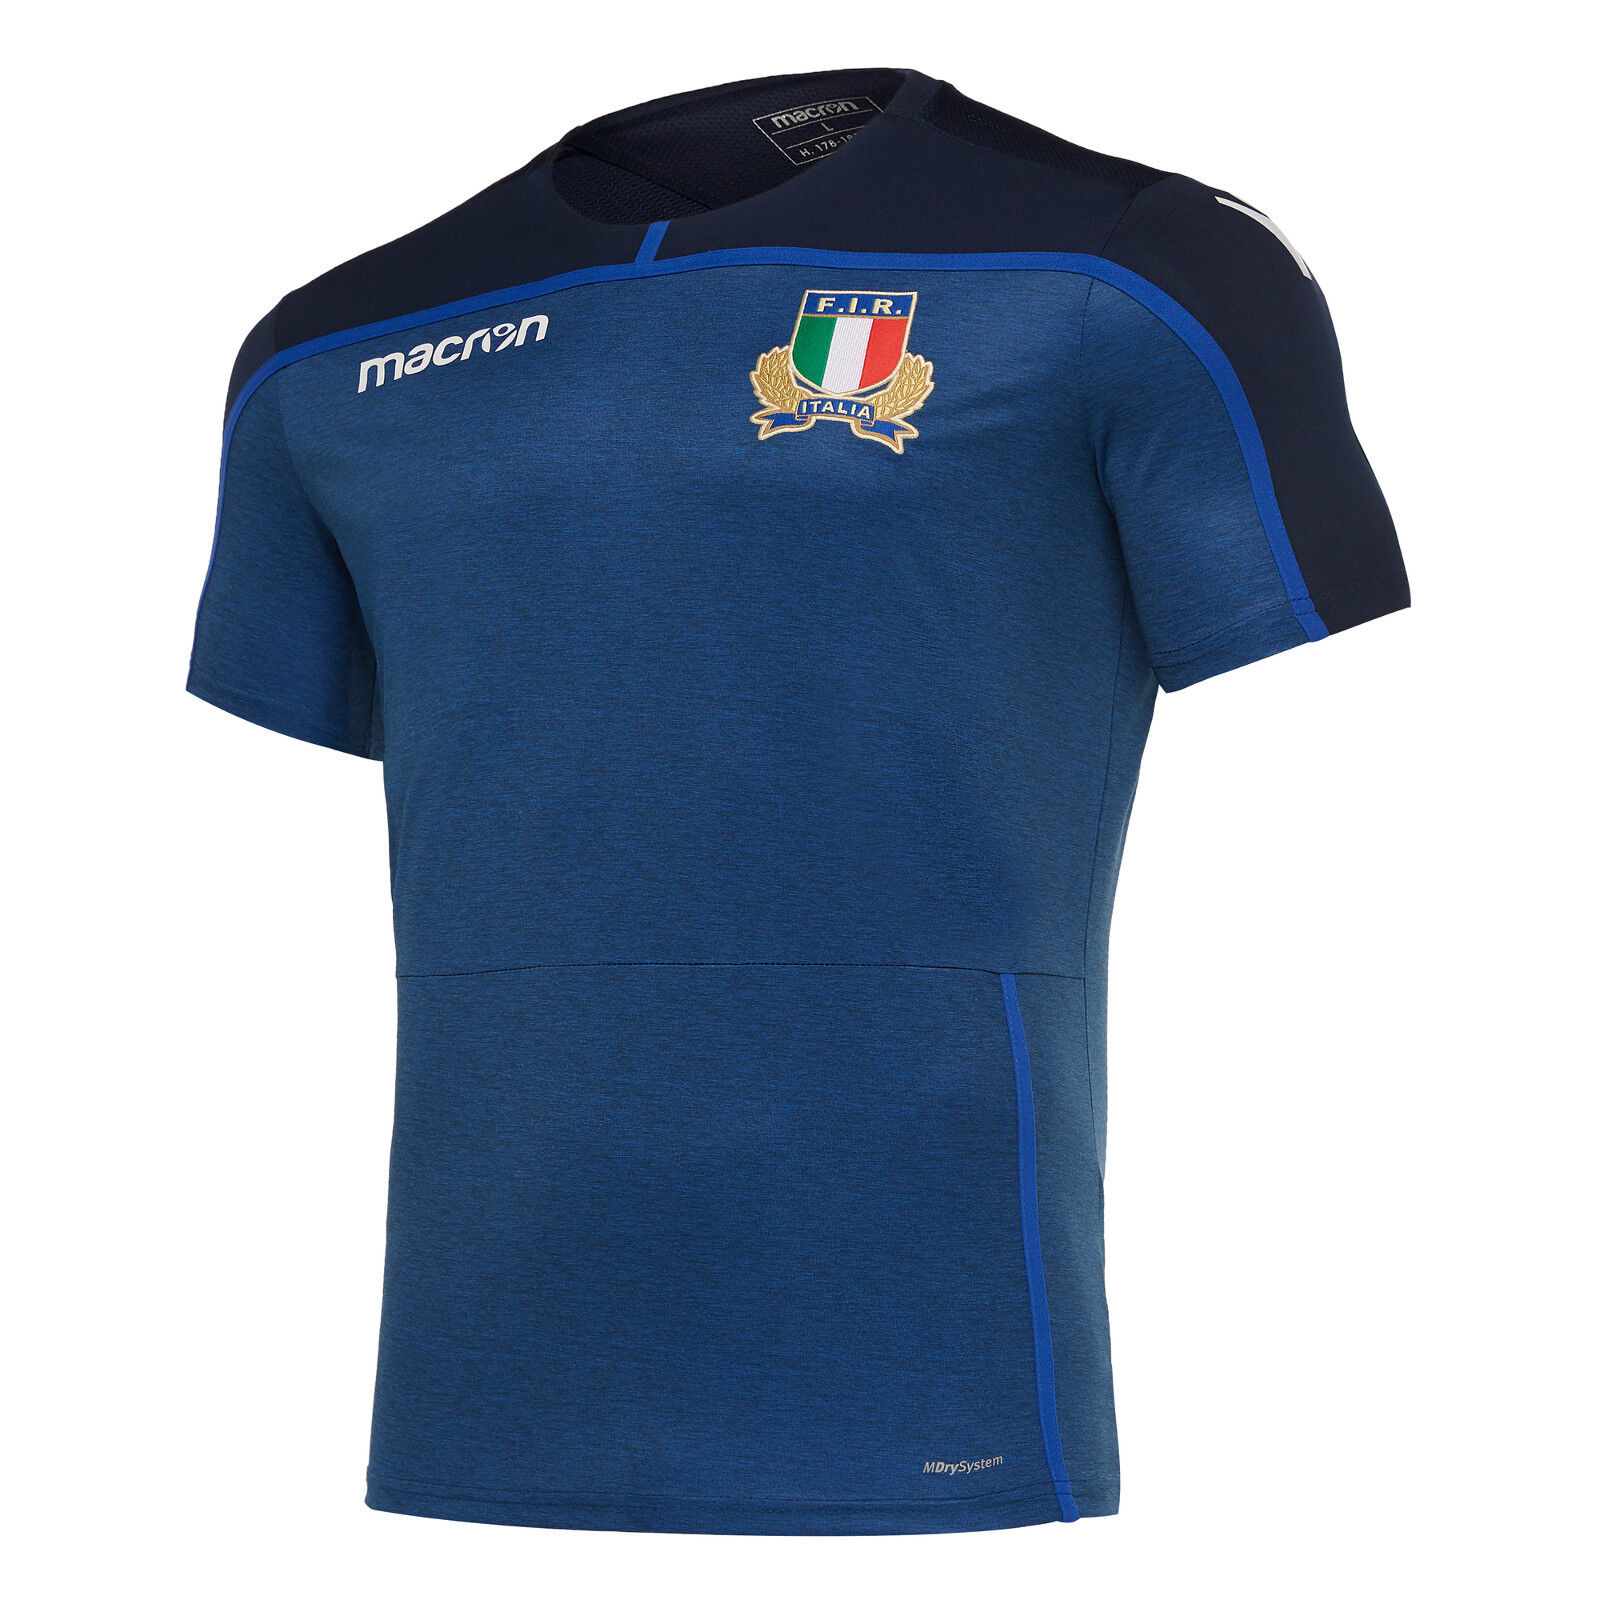 ITALY RUGBY MACRON - OFFICIAL PLAYER SHIRT - SEASON 2018 19